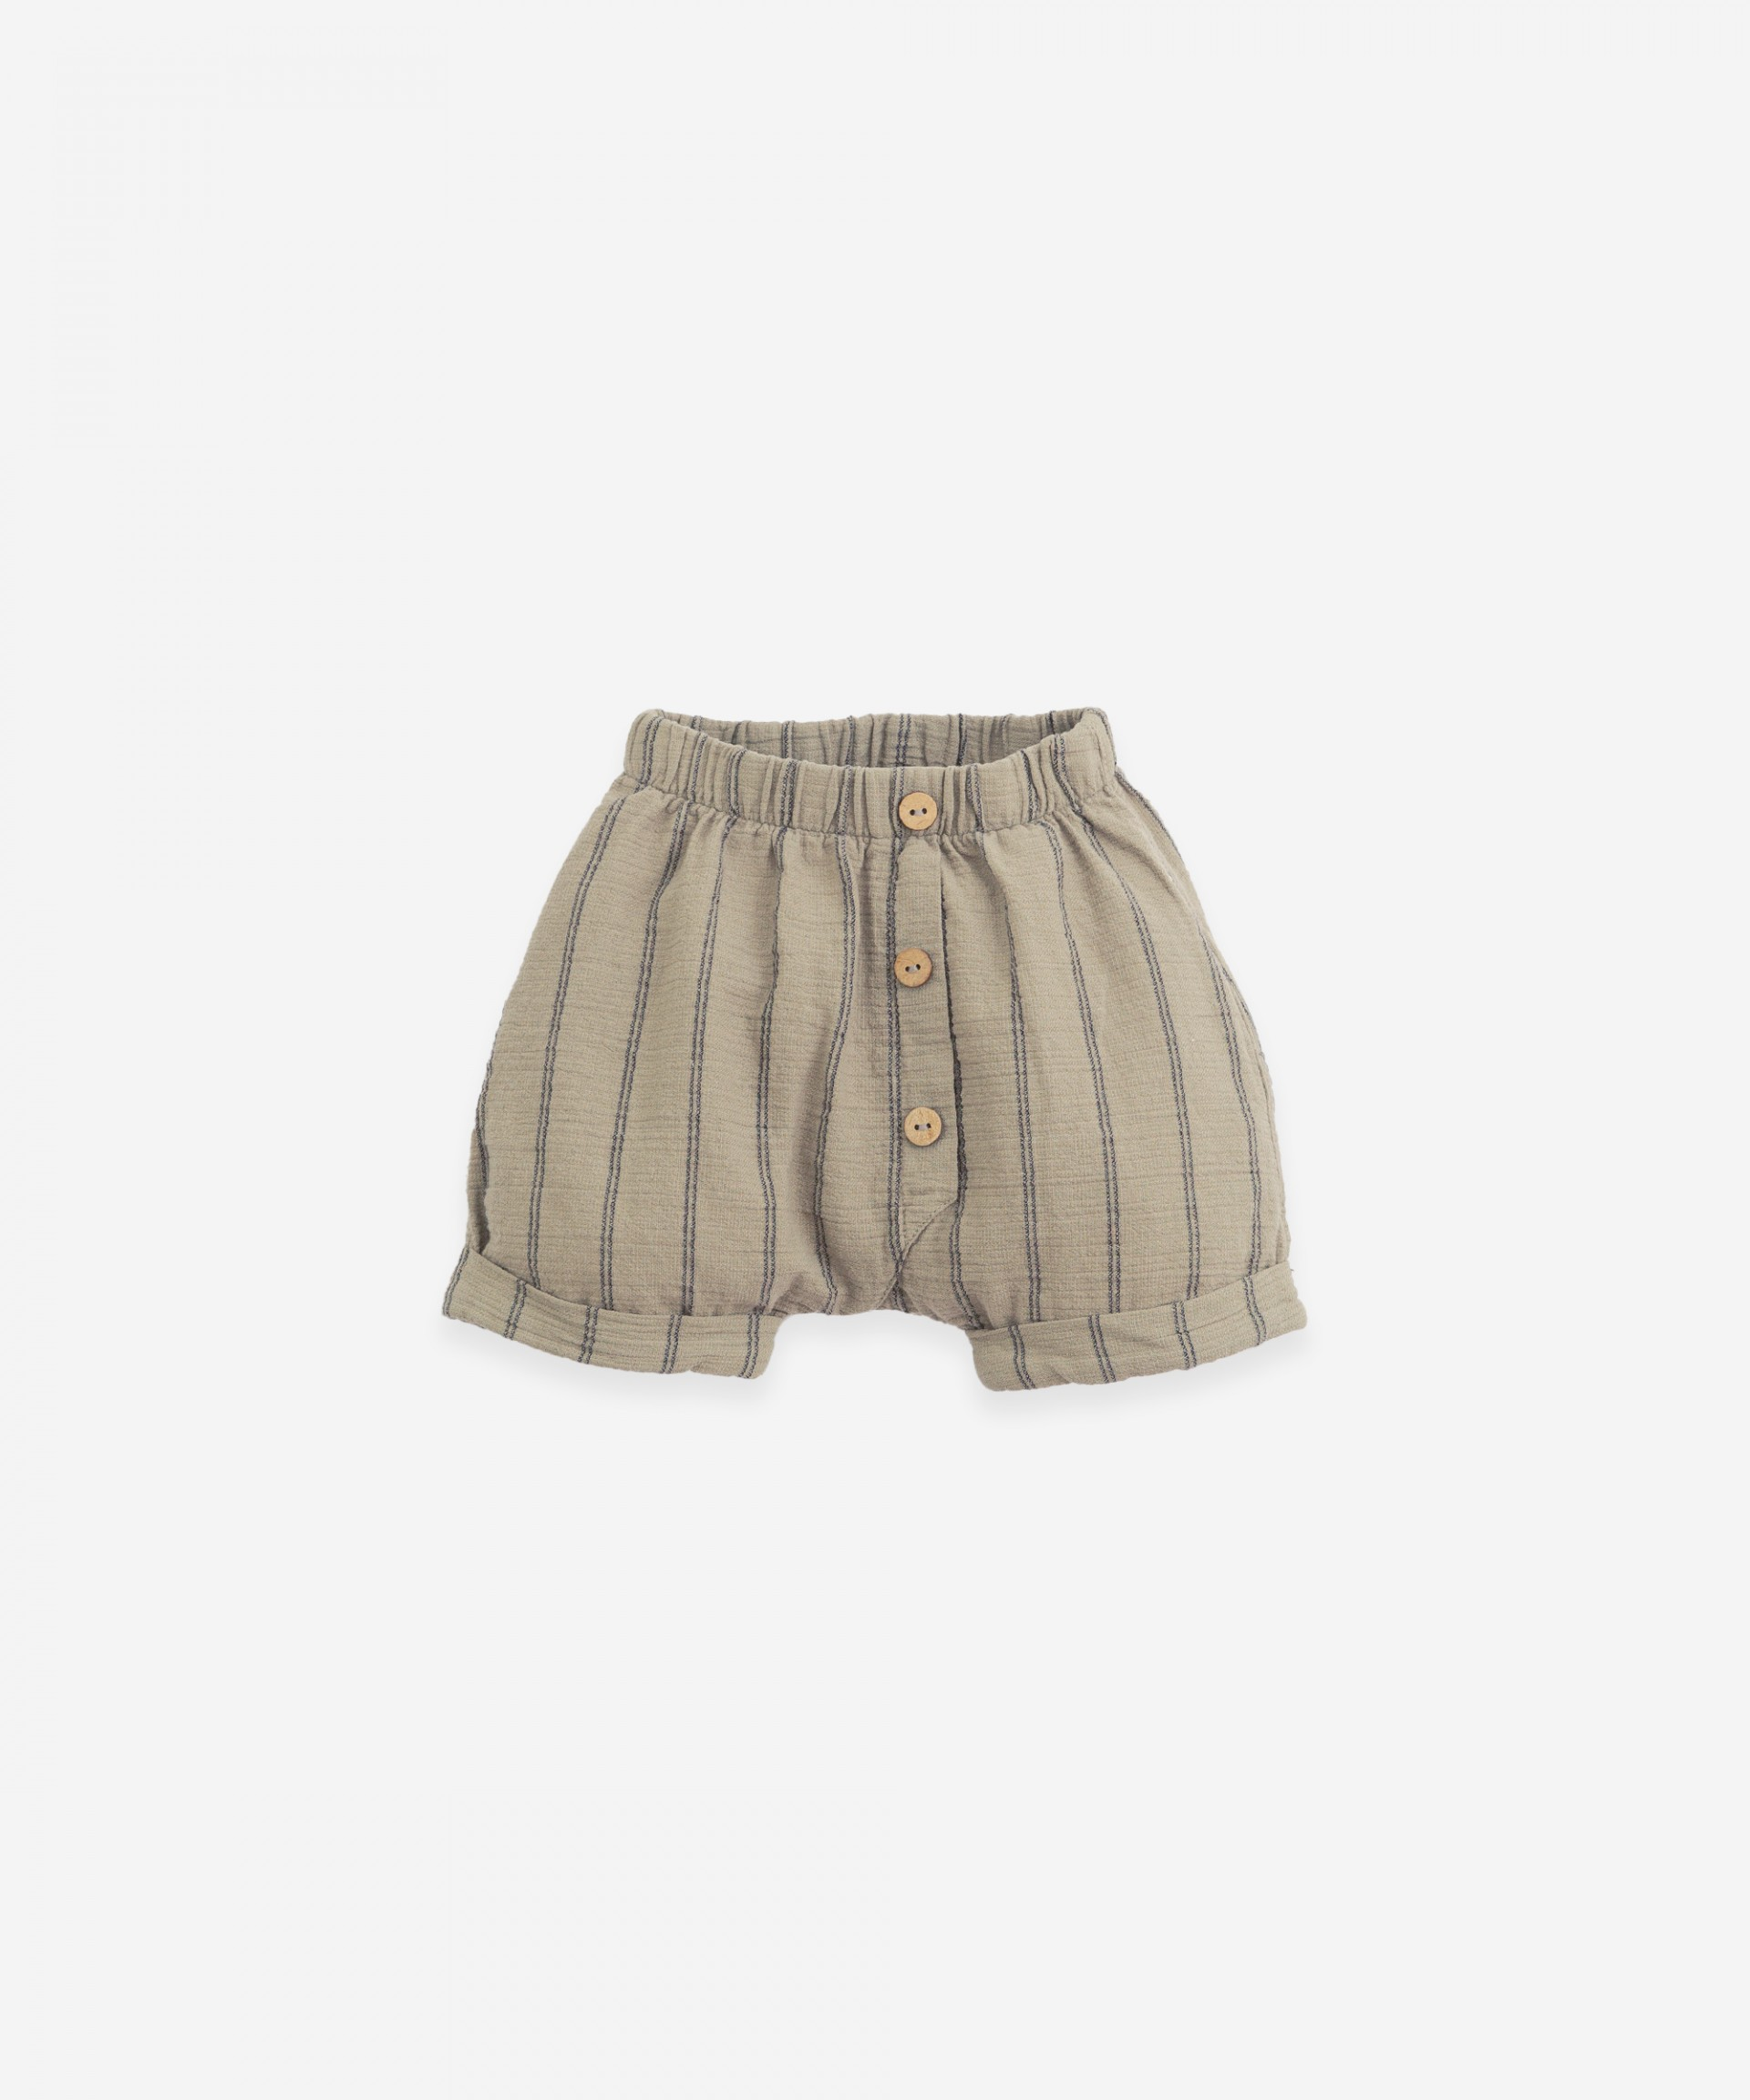 Shorts with decorative buttons | Botany